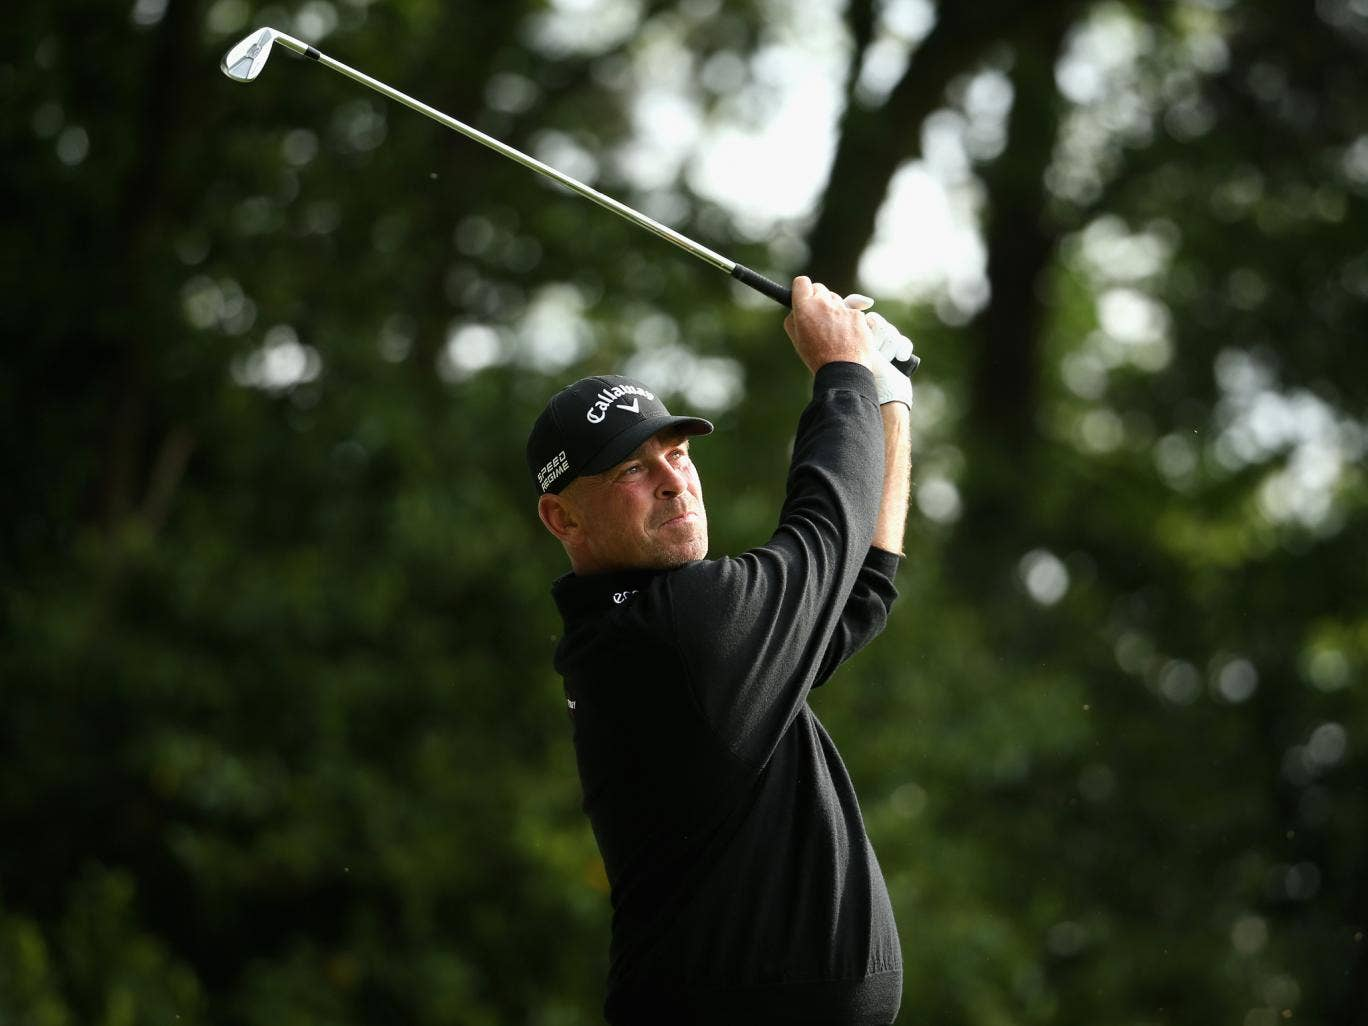 Thomas Bjorn of Denmark tees off on the 2nd hole during day one of the BMW PGA Championship at Wentworth on May 22 as he sets the early pace going eight-under through 14